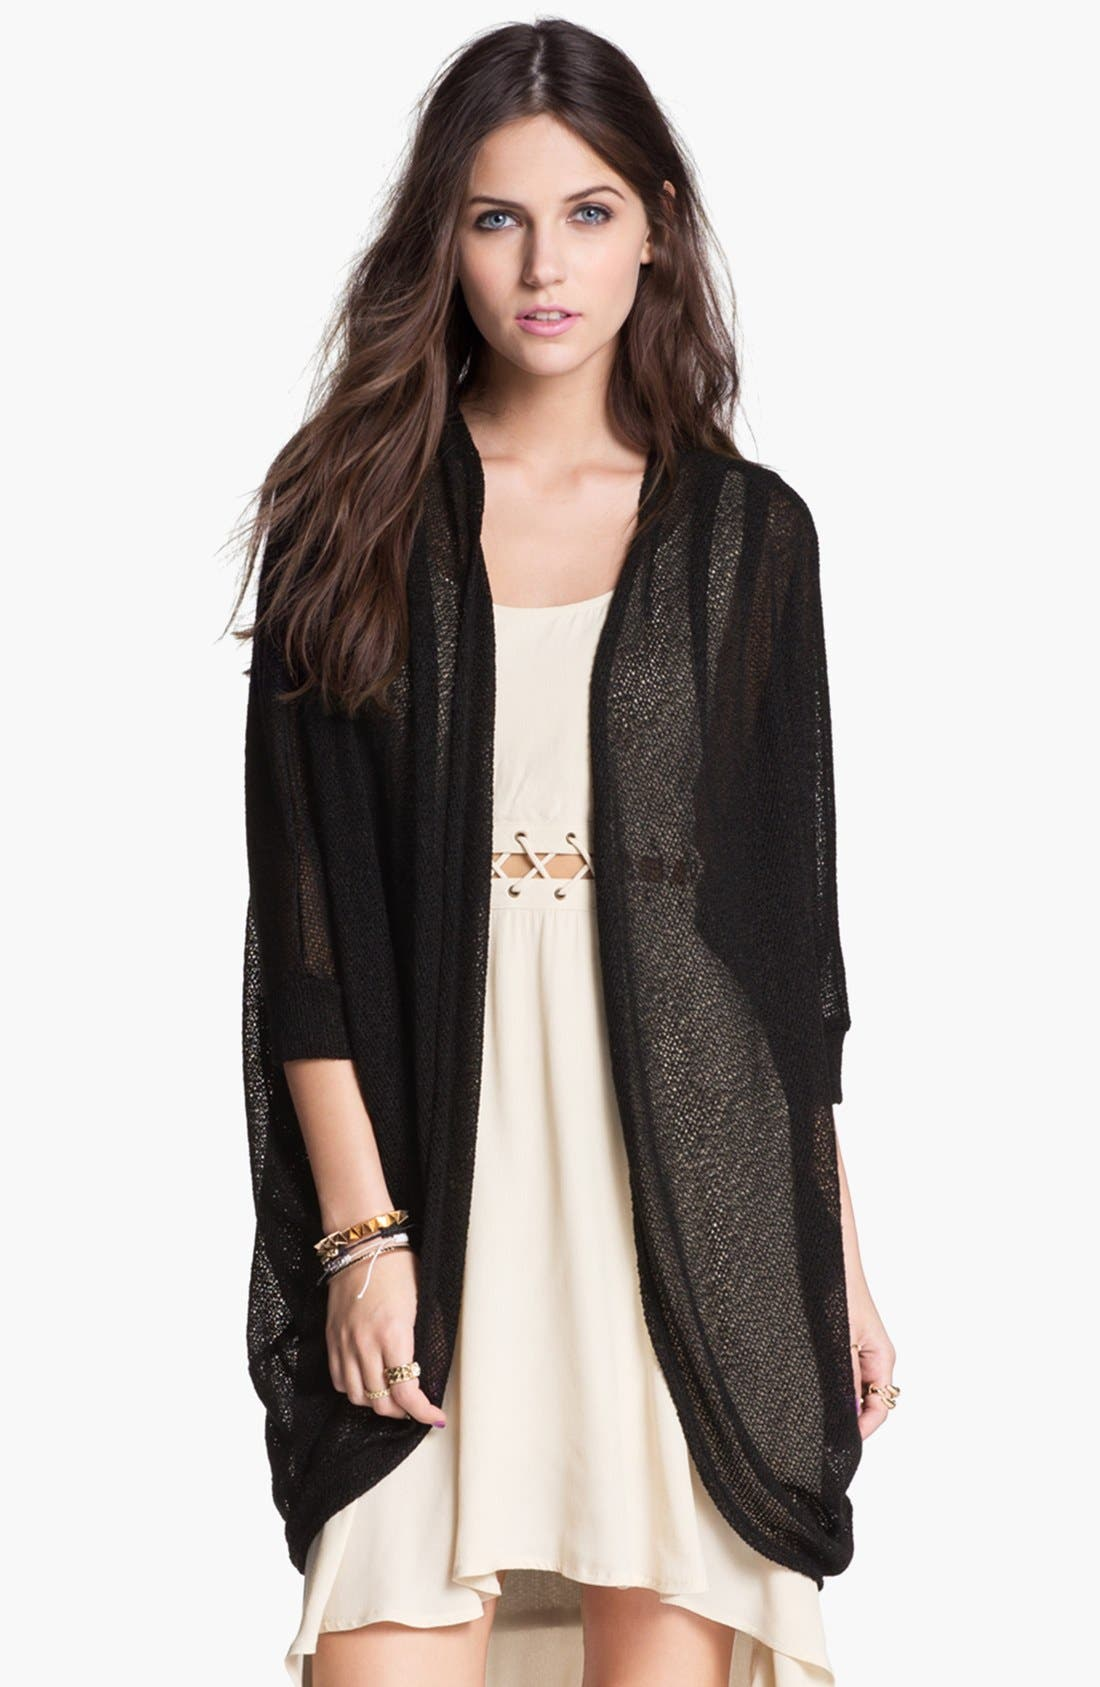 Alternate Image 1 Selected - Painted Threads Oversized Sheer Knit Cardigan (Juniors)